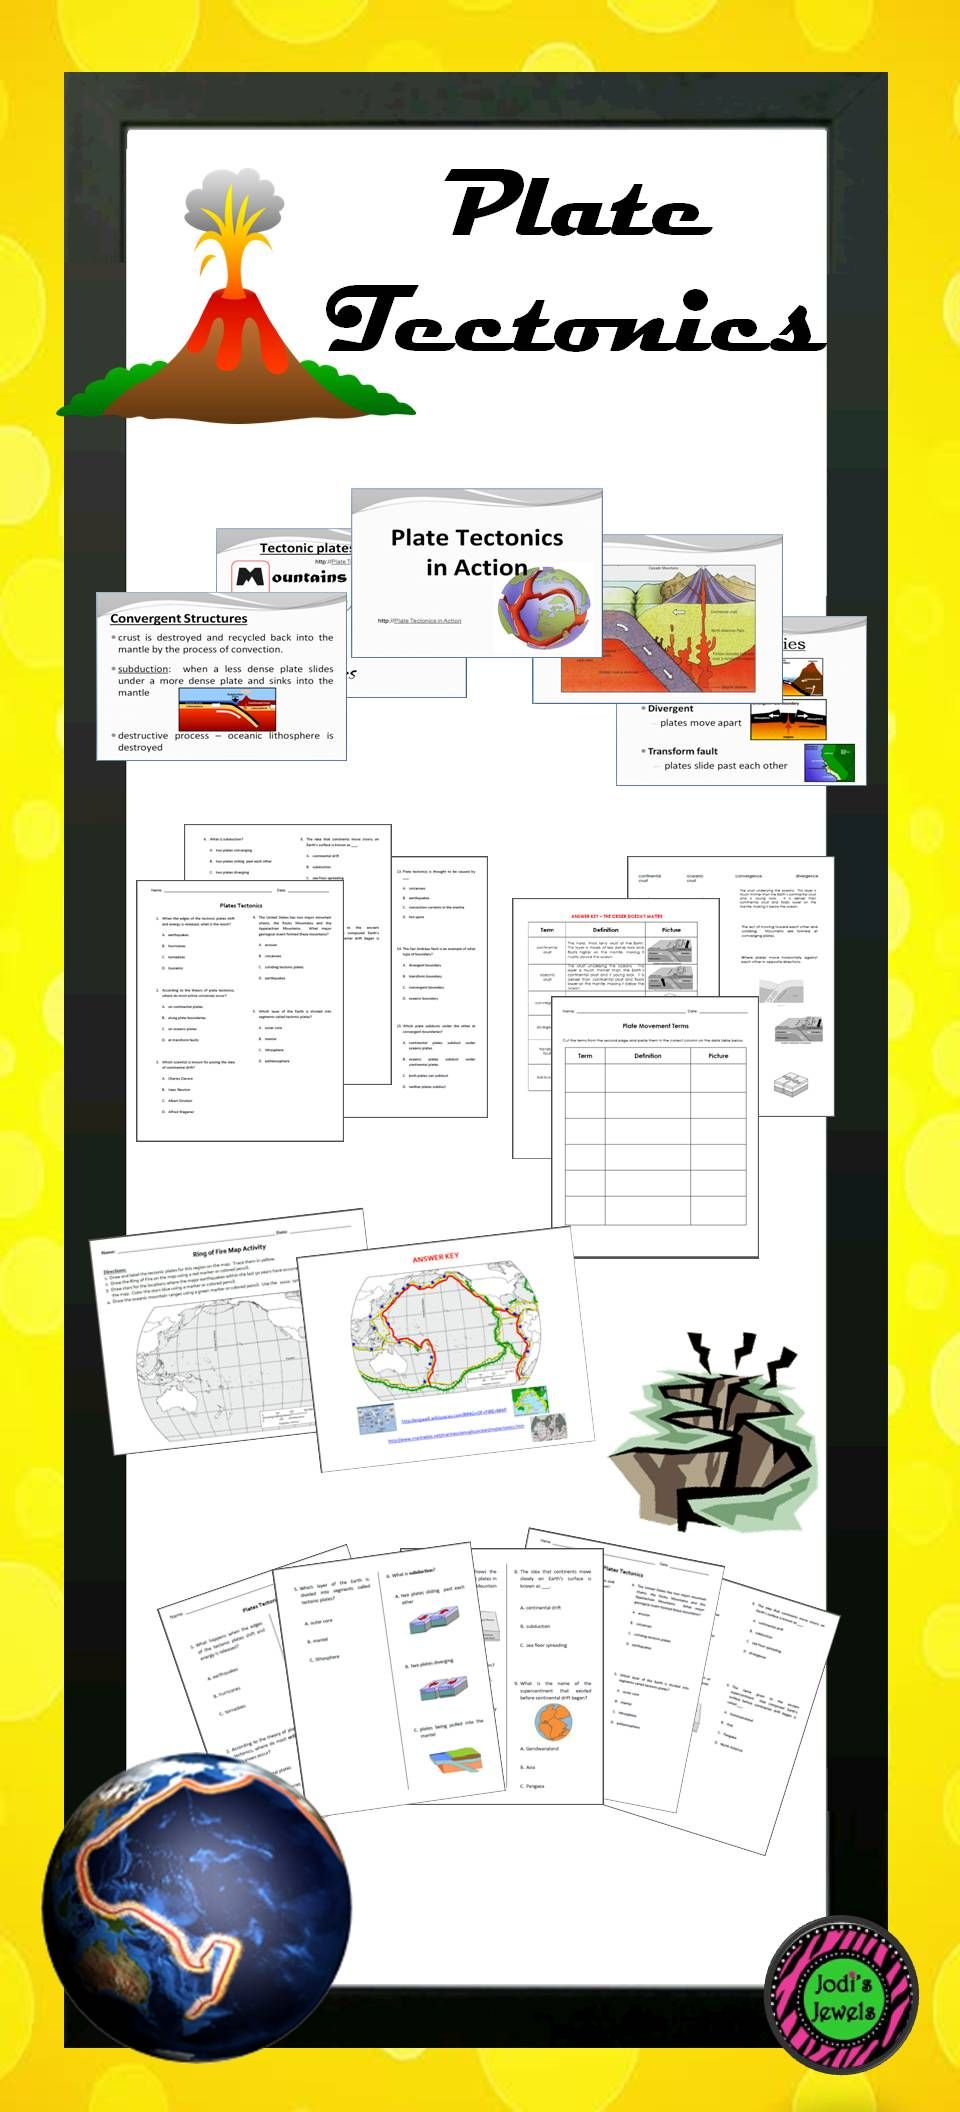 Plate tectonic lesson activities including maps, quizzes ...